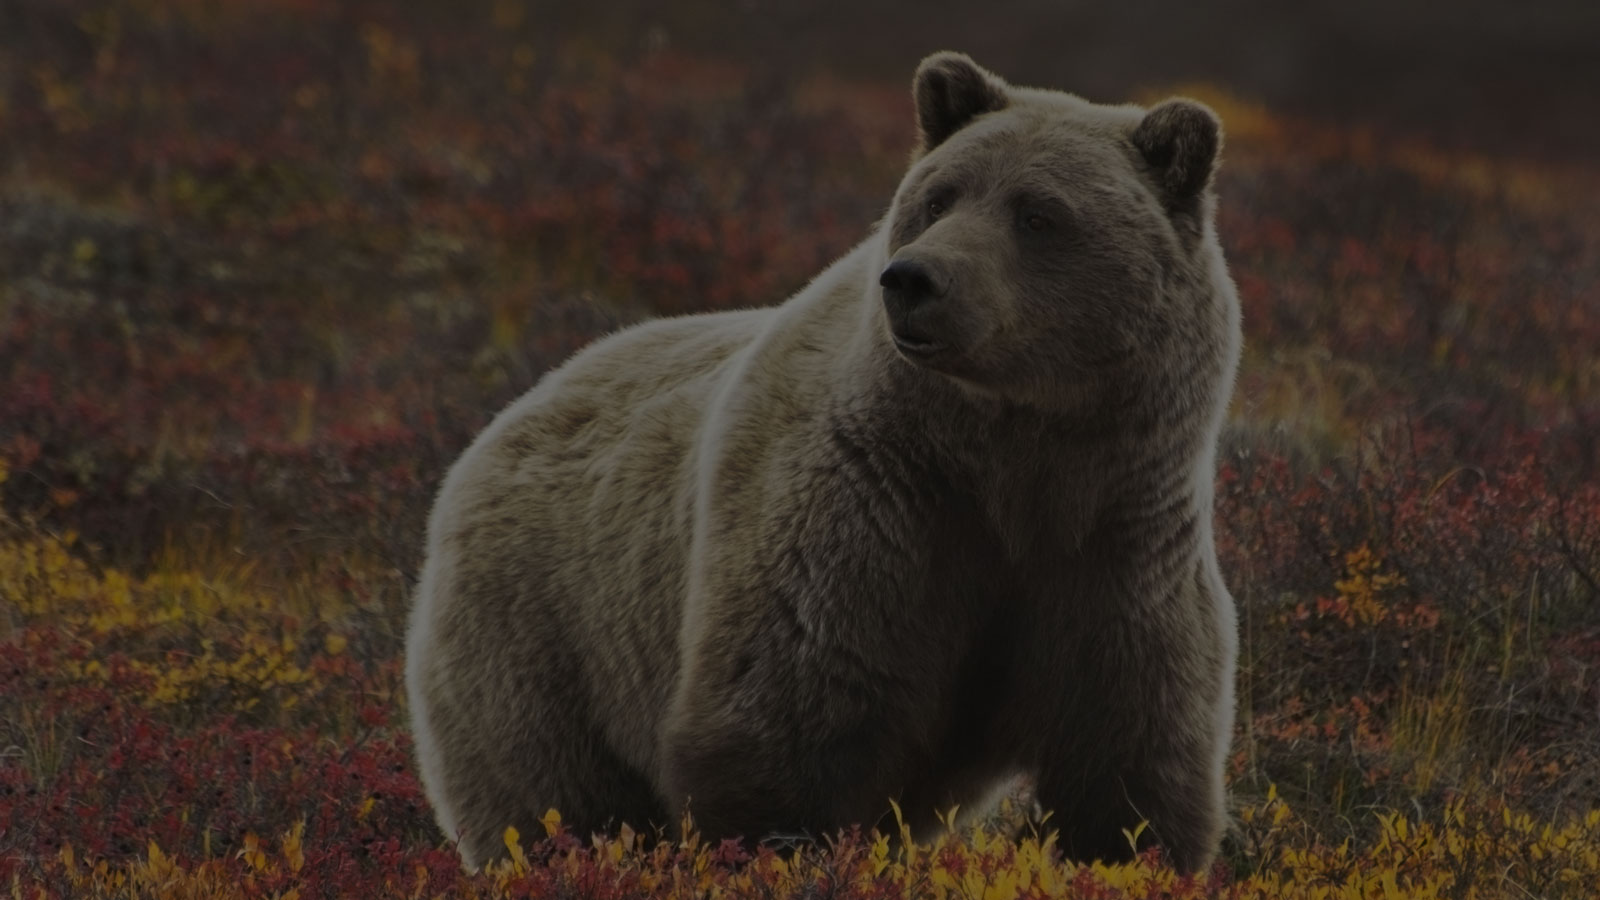 <h4>PROTECTING ENDANGERED SPECIES</h4><h5>We're calling for the Endangered Species Act to be maintained and strengthened, not weakened as it was in 2019.</h5><em>NancyS via Shutterstock.com</em>